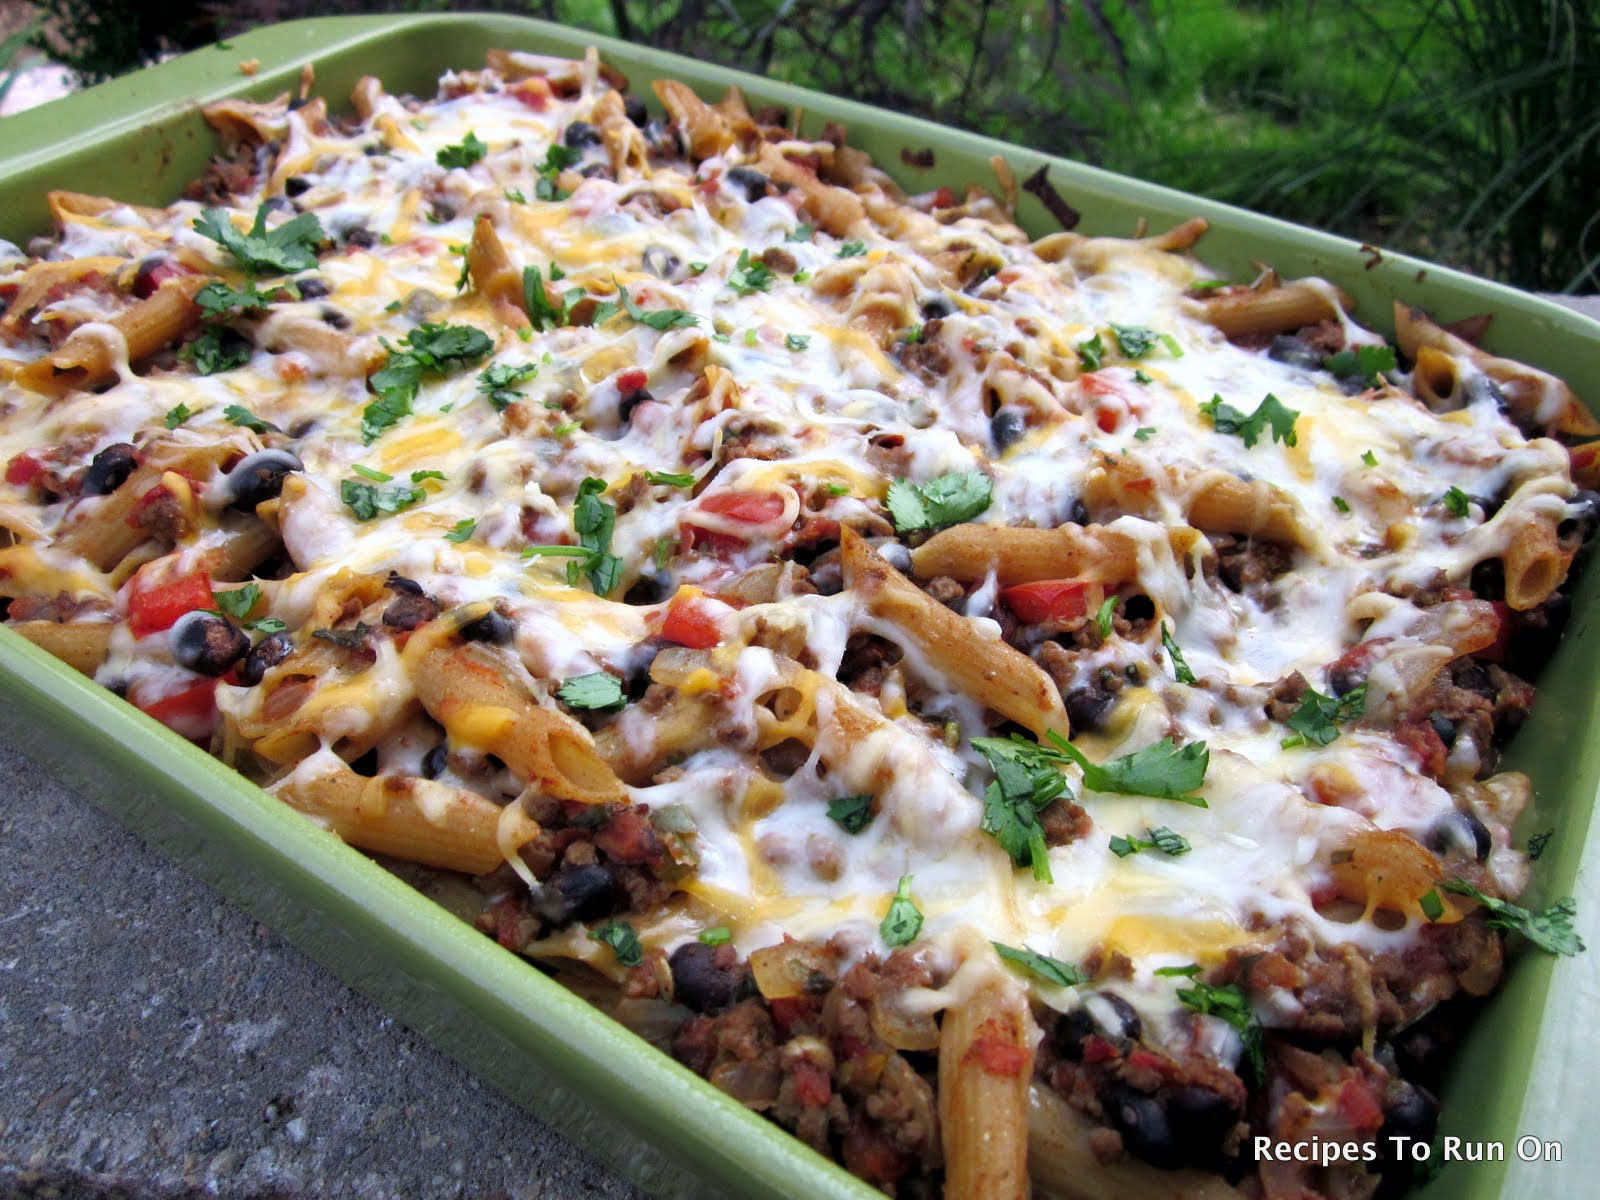 2. Mexican Baked Penne